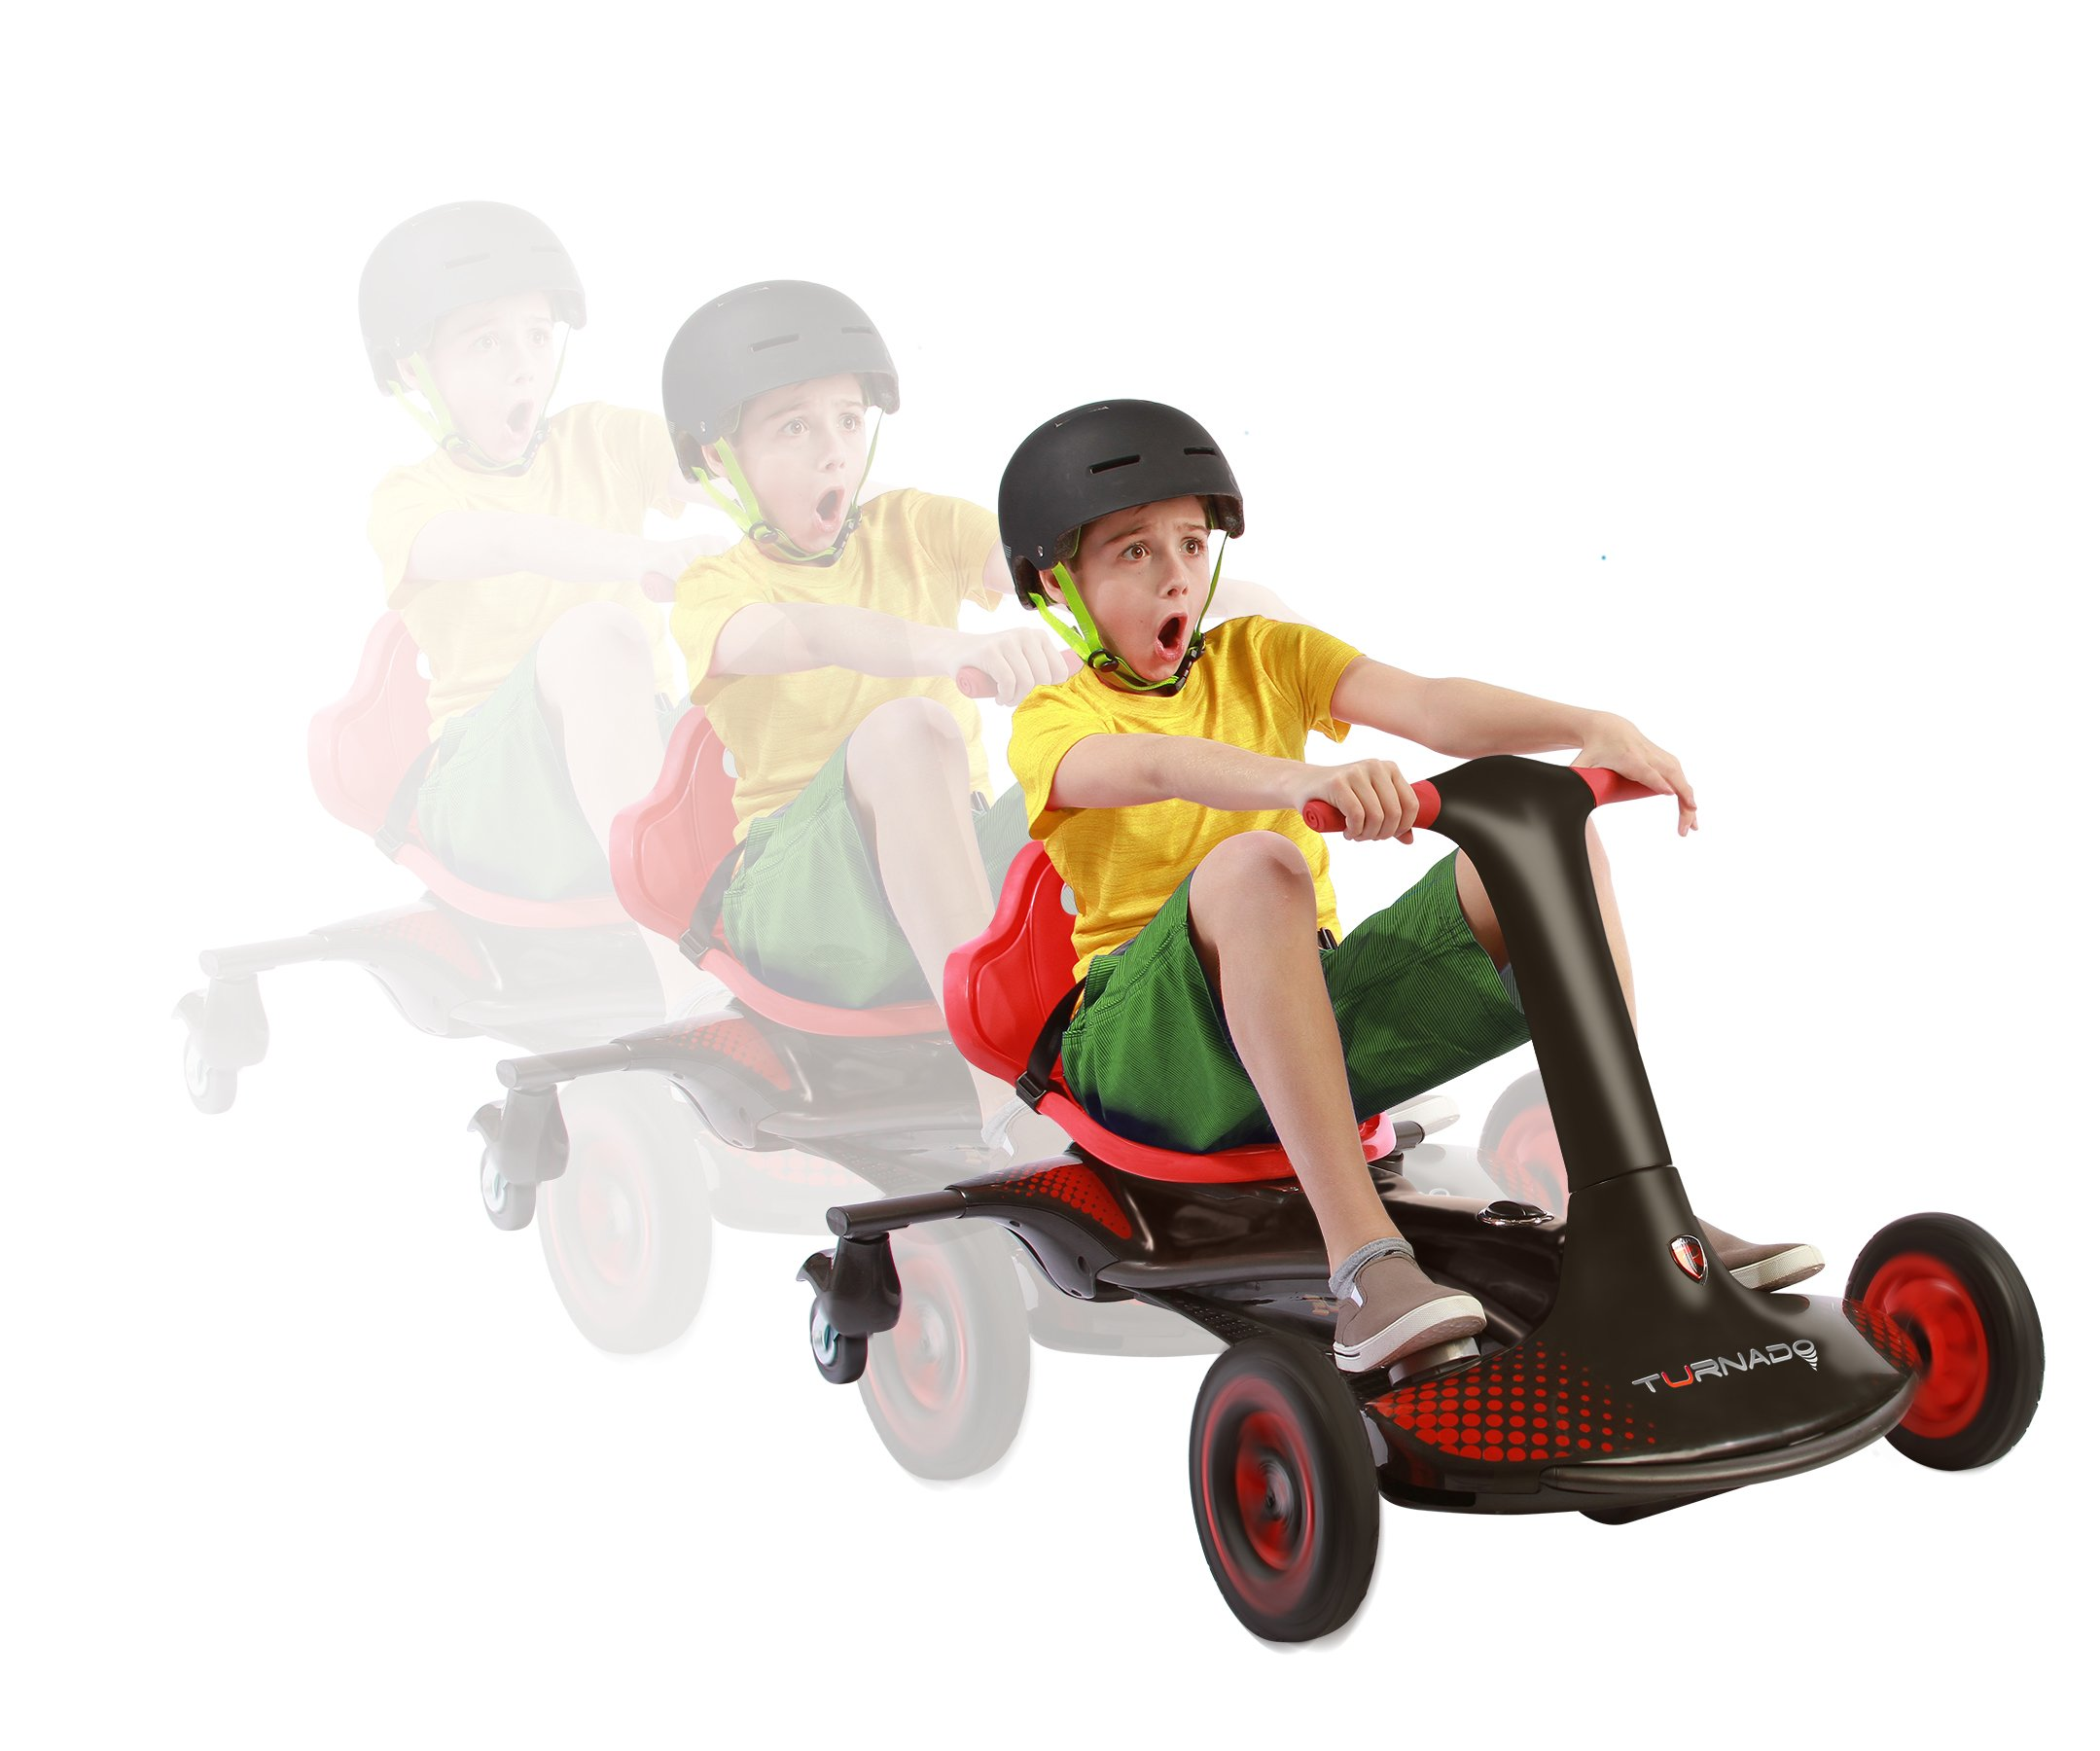 Rollplay Turnado 24-Volt Battery-Powered Ride-On by Rollplay (Image #5)